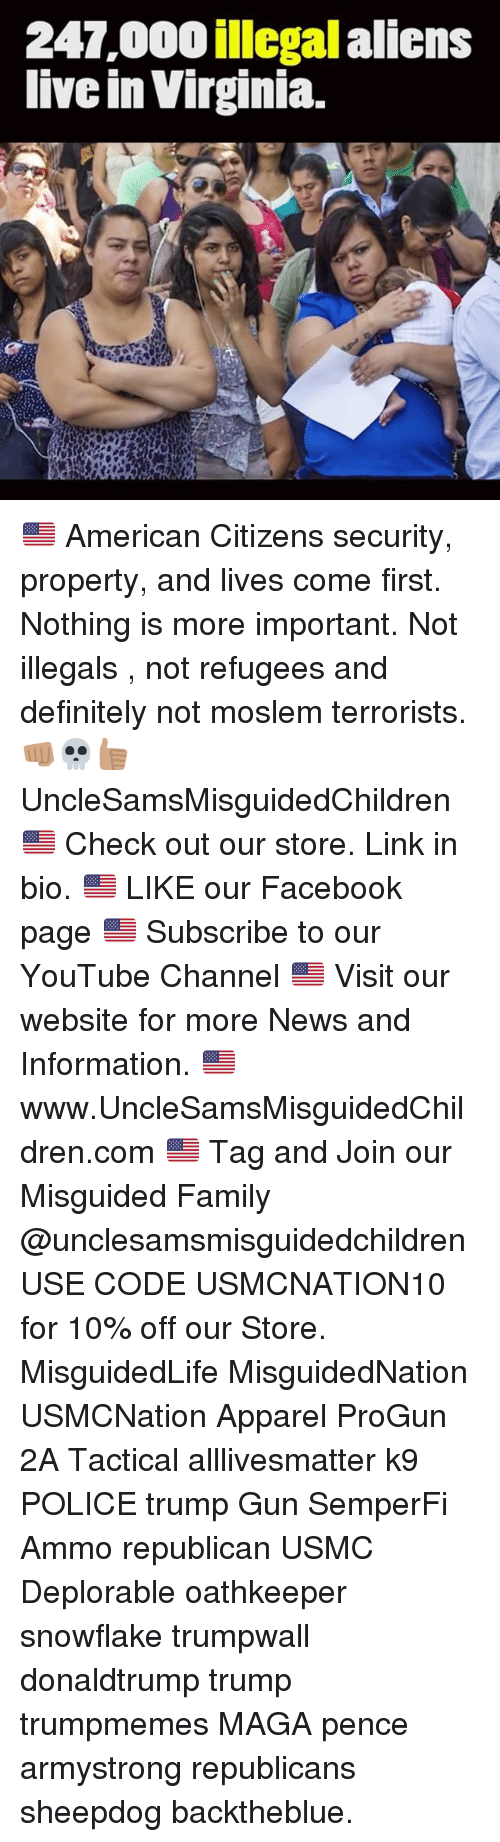 Illegal Alien: 247,000 illegal aliens  live in Virginia. 🇺🇸 American Citizens security, property, and lives come first. Nothing is more important. Not illegals , not refugees and definitely not moslem terrorists. 👊🏽💀👍🏽 UncleSamsMisguidedChildren 🇺🇸 Check out our store. Link in bio. 🇺🇸 LIKE our Facebook page 🇺🇸 Subscribe to our YouTube Channel 🇺🇸 Visit our website for more News and Information. 🇺🇸 www.UncleSamsMisguidedChildren.com 🇺🇸 Tag and Join our Misguided Family @unclesamsmisguidedchildren USE CODE USMCNATION10 for 10% off our Store. MisguidedLife MisguidedNation USMCNation Apparel ProGun 2A Tactical alllivesmatter k9 POLICE trump Gun SemperFi Ammo republican USMC Deplorable oathkeeper snowflake trumpwall donaldtrump trump trumpmemes MAGA pence armystrong republicans sheepdog backtheblue.